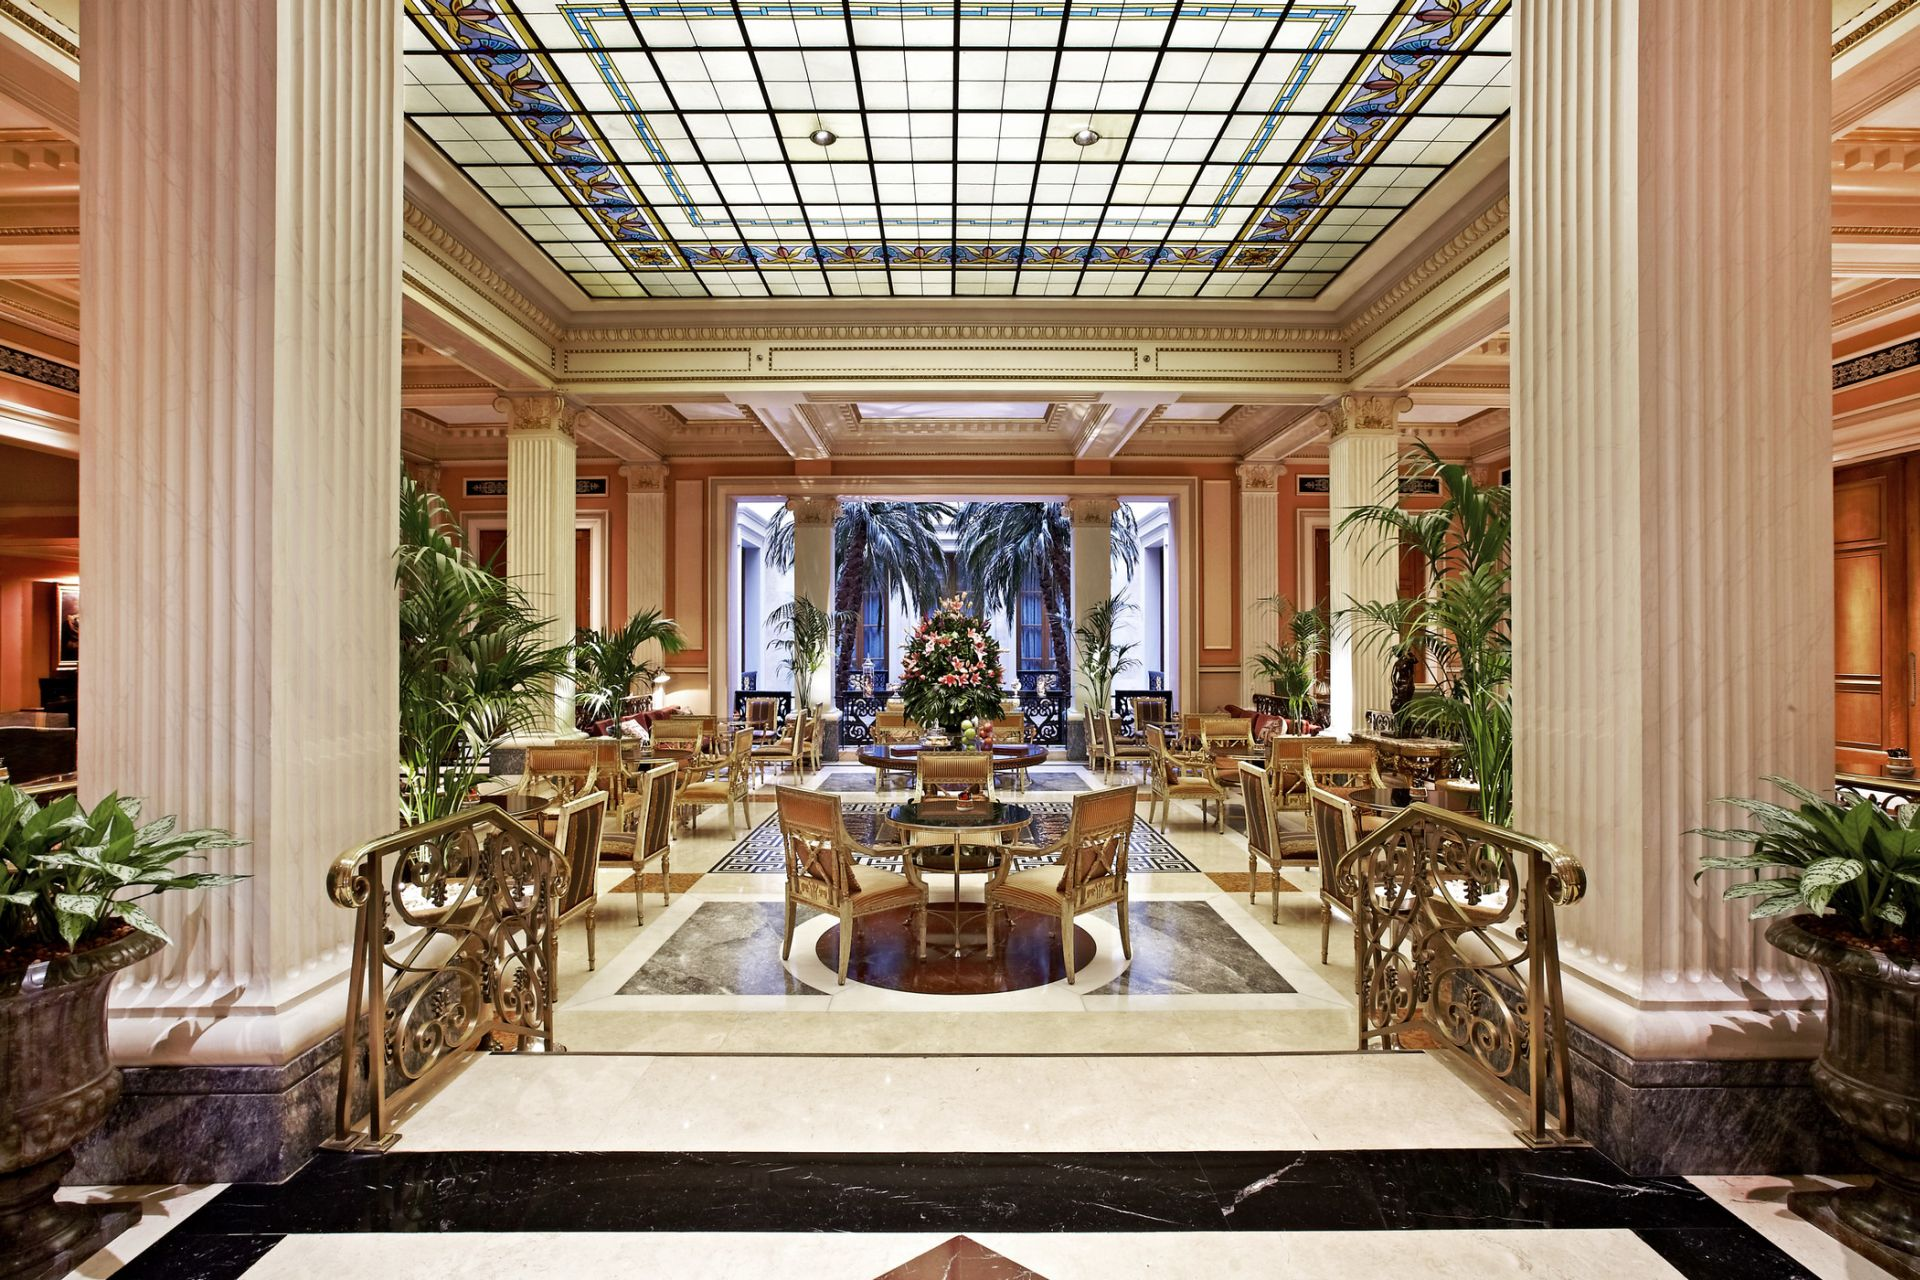 Hotel Grande Bretagne A Luxury Collection Athens Photo Gallery Exterior View Lobby Alexander Bar S Cigar Lounge Winter Garden